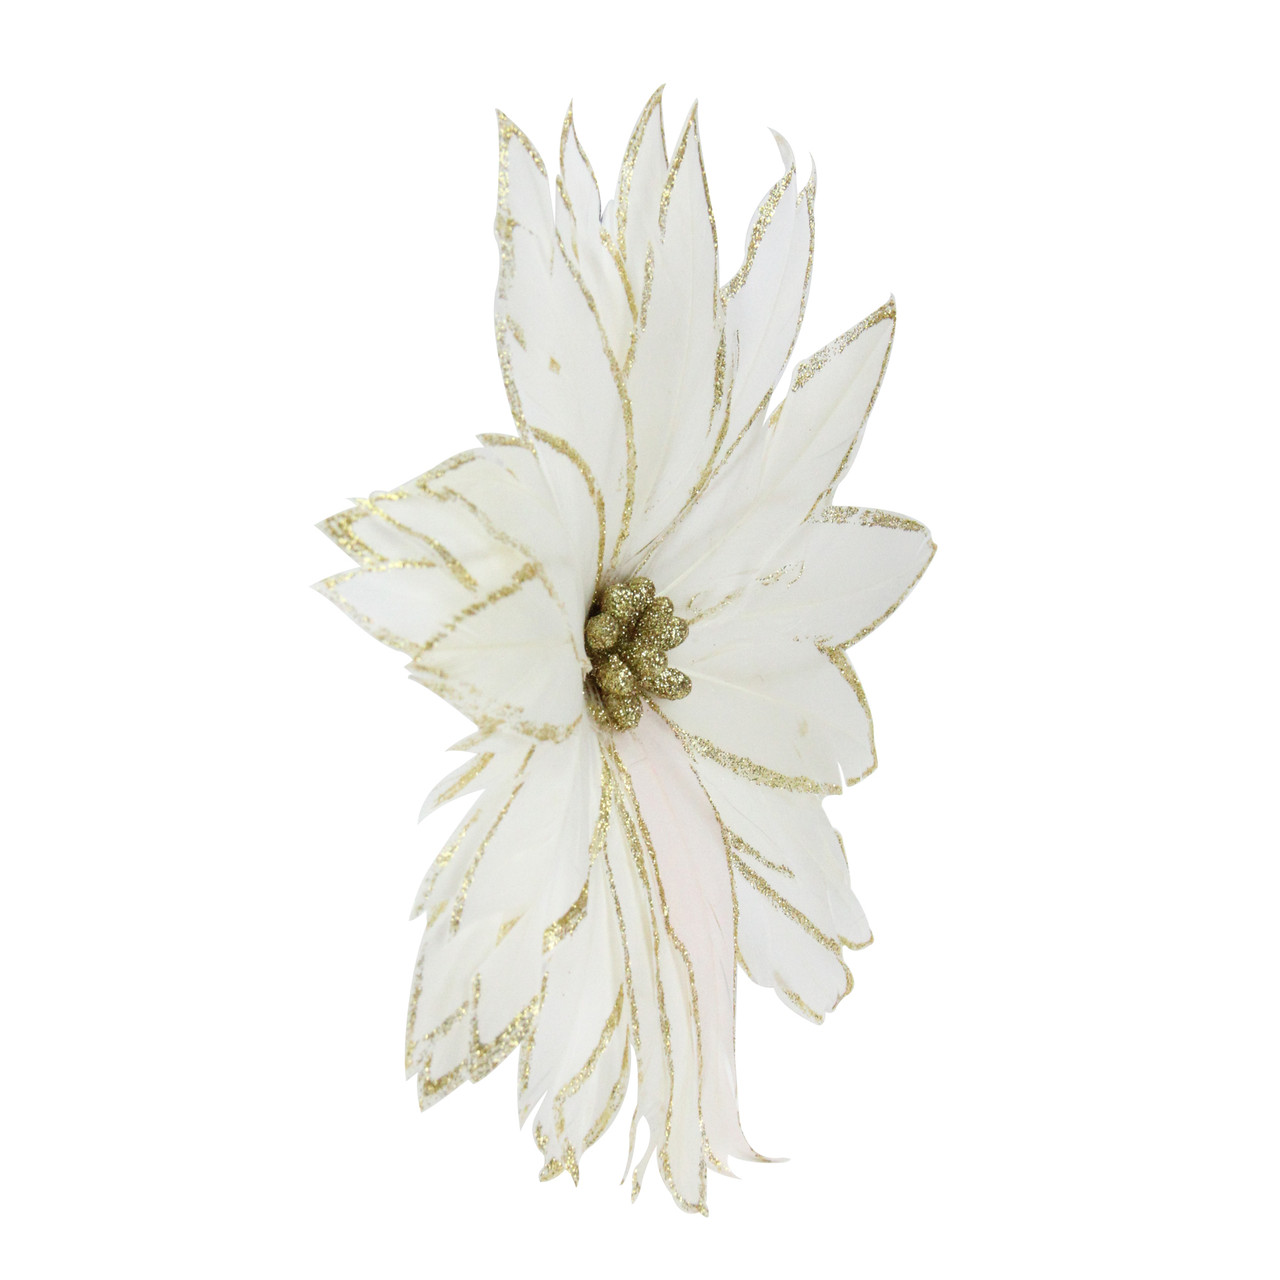 75 Gilded White Christmas Glittered Poinsettia Feather Clip On